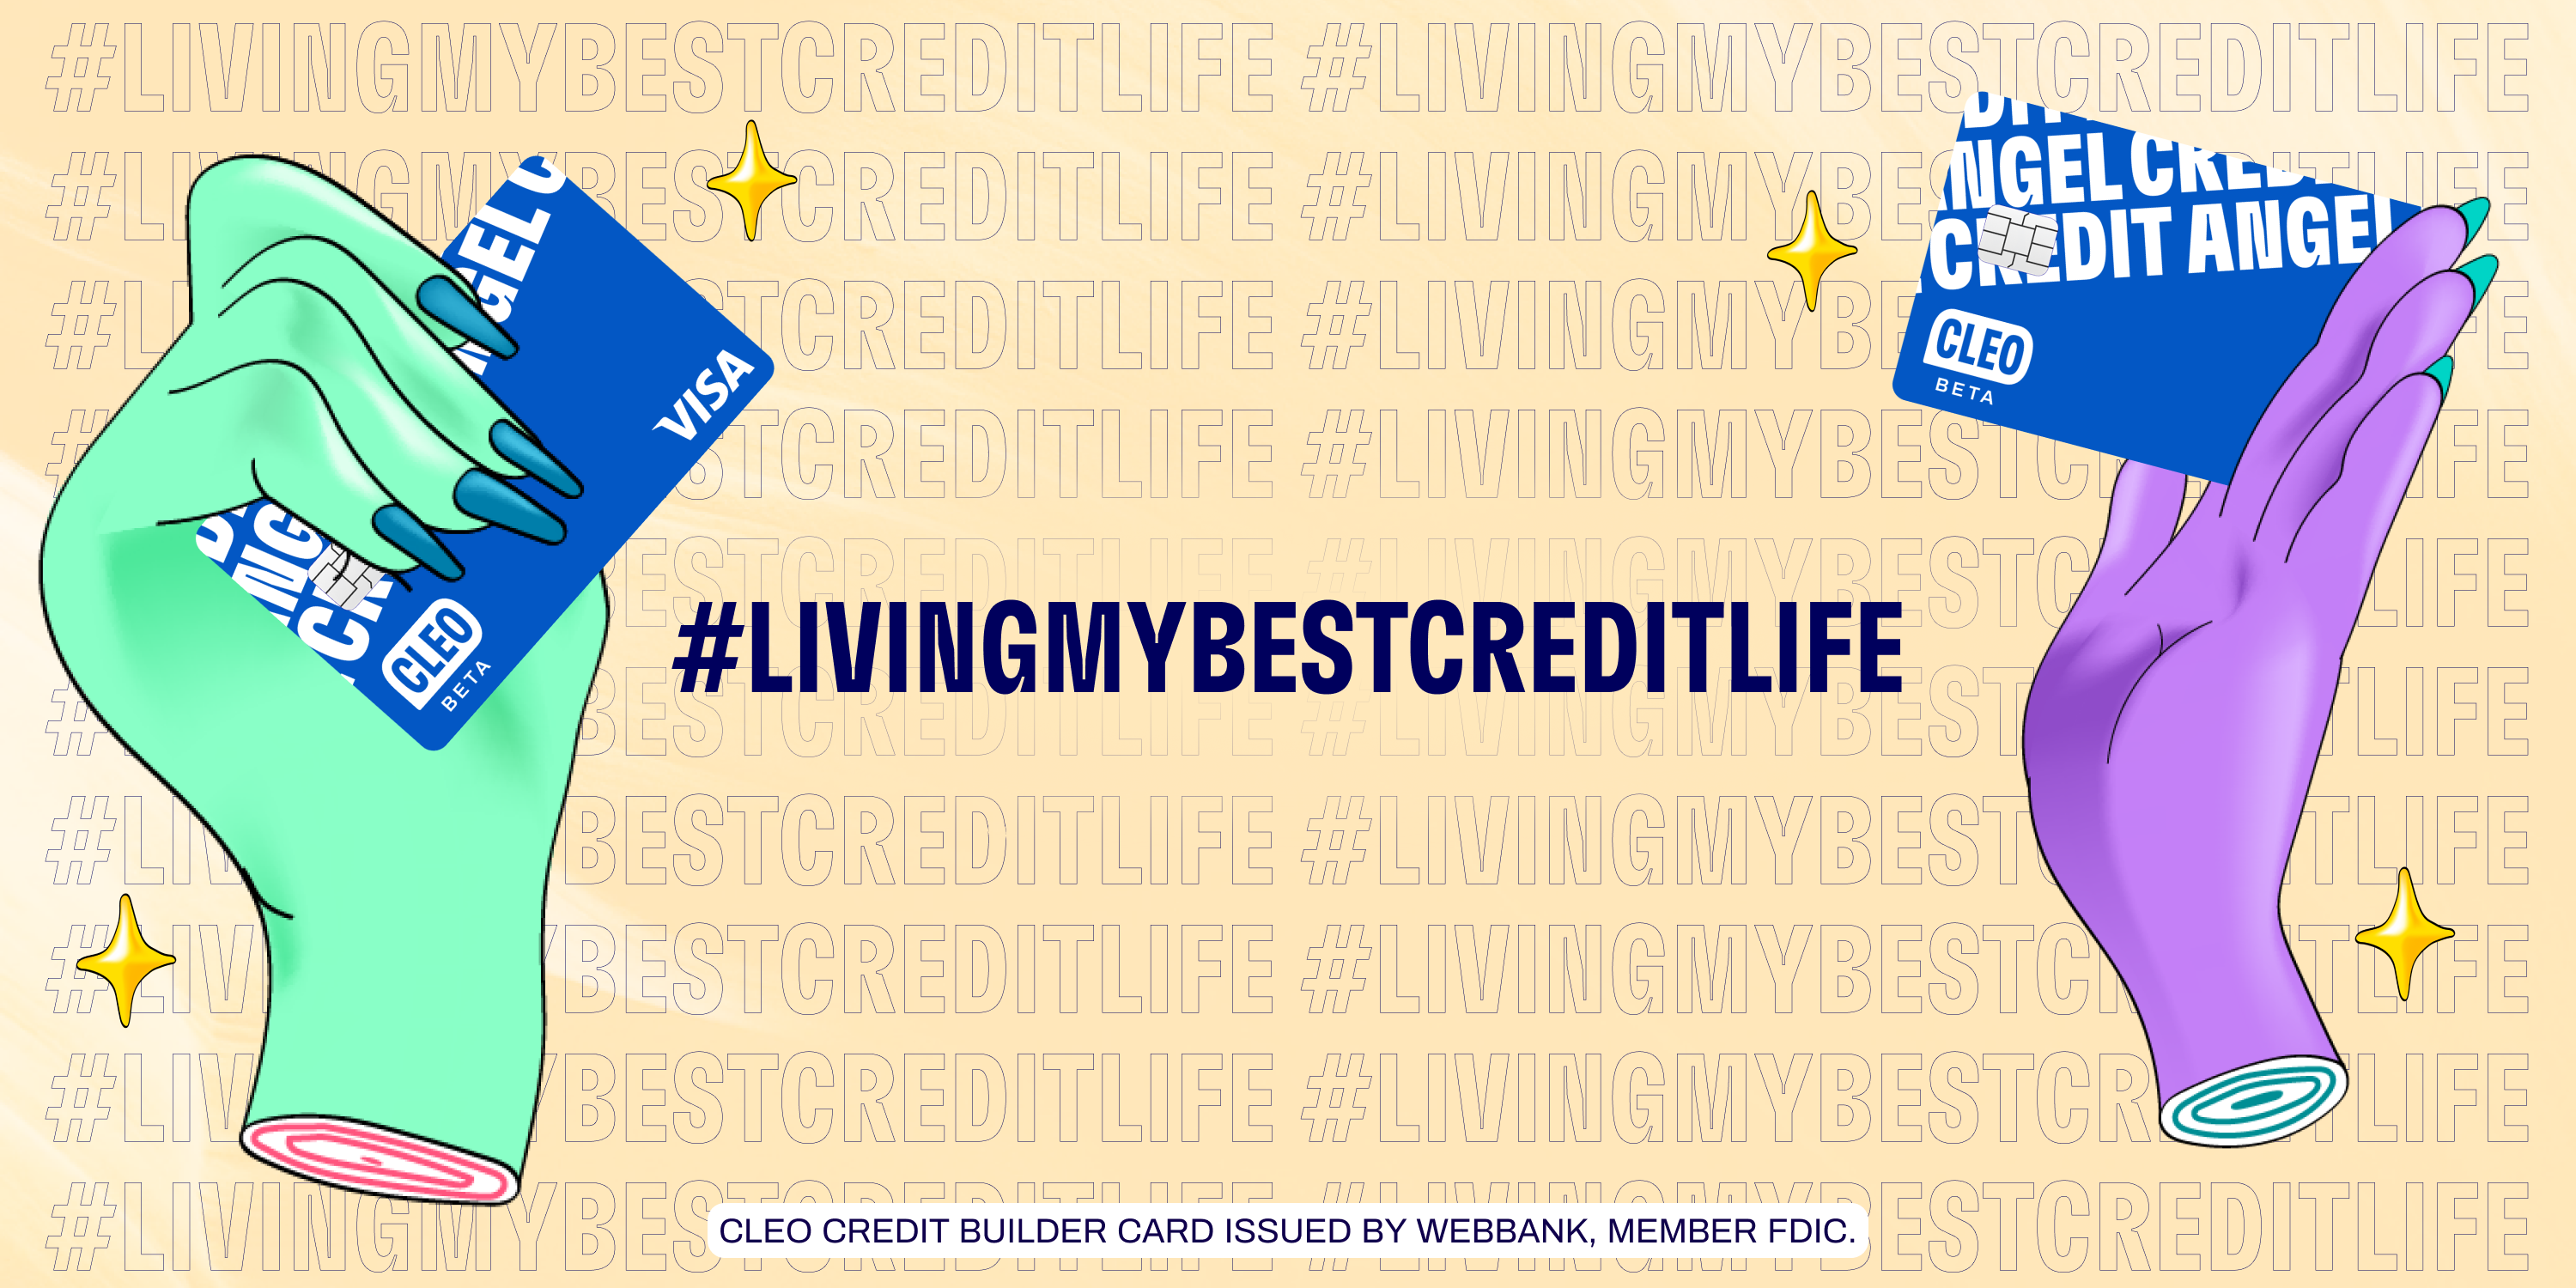 Let's get your credit living its best life